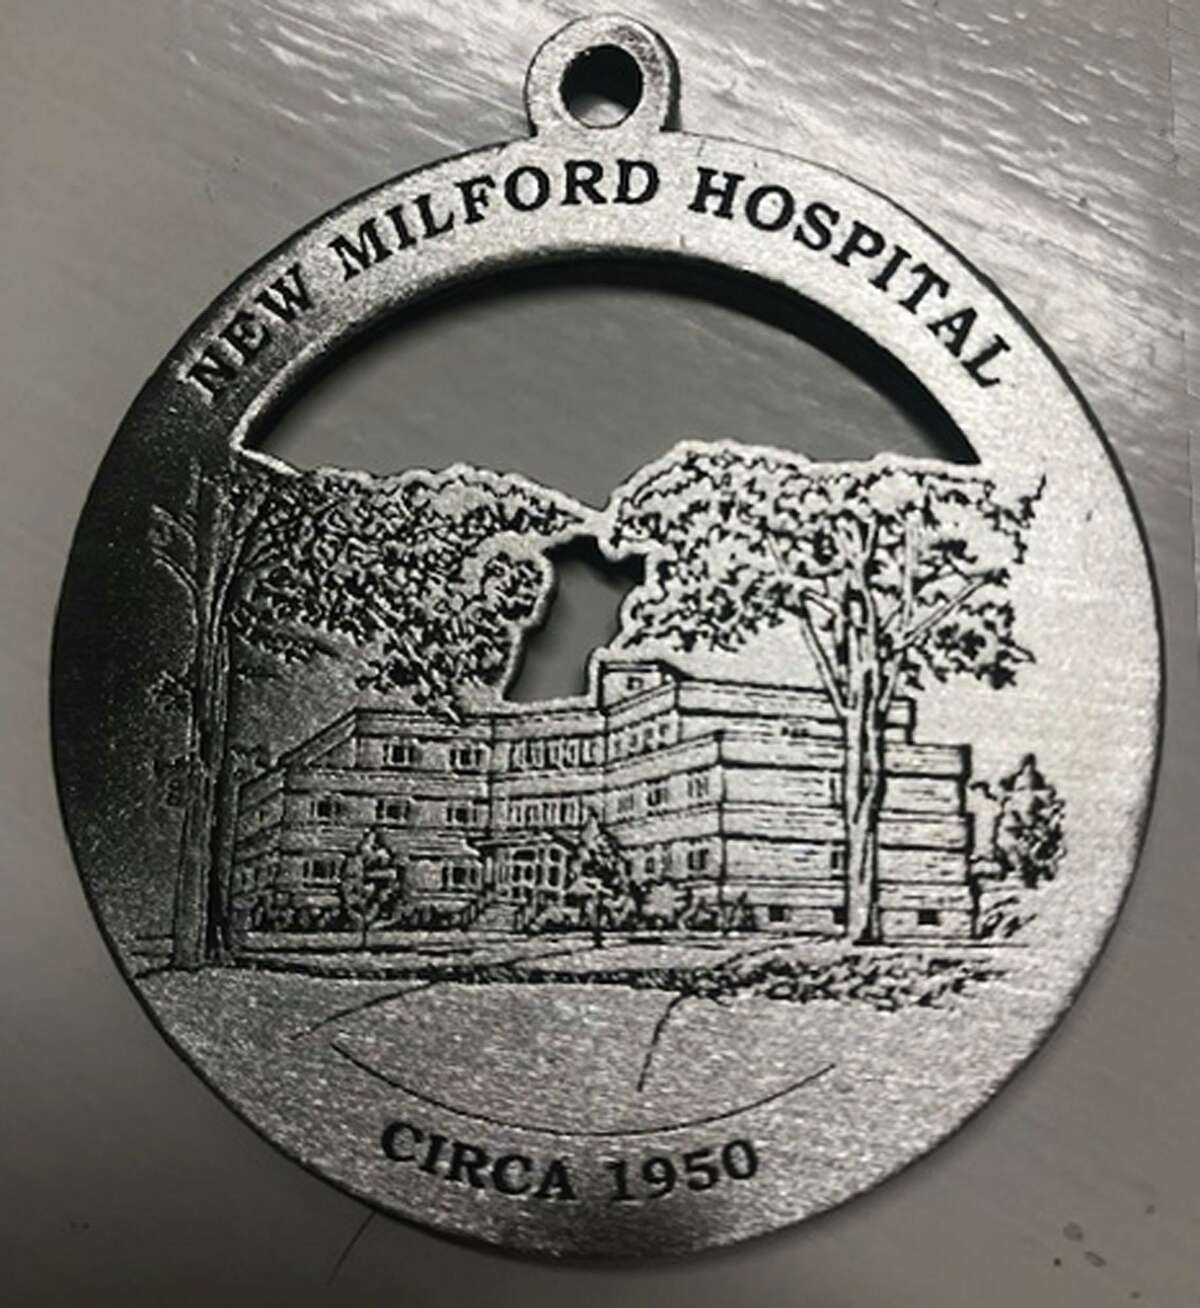 The New Milford Historical Society & Museum is offering its 2020 commemorative medallion for holiday purchase. This year's medallion features images of New Milford Hospital both as it appeared in mid-20th century from Elm Street and its contemporary look.